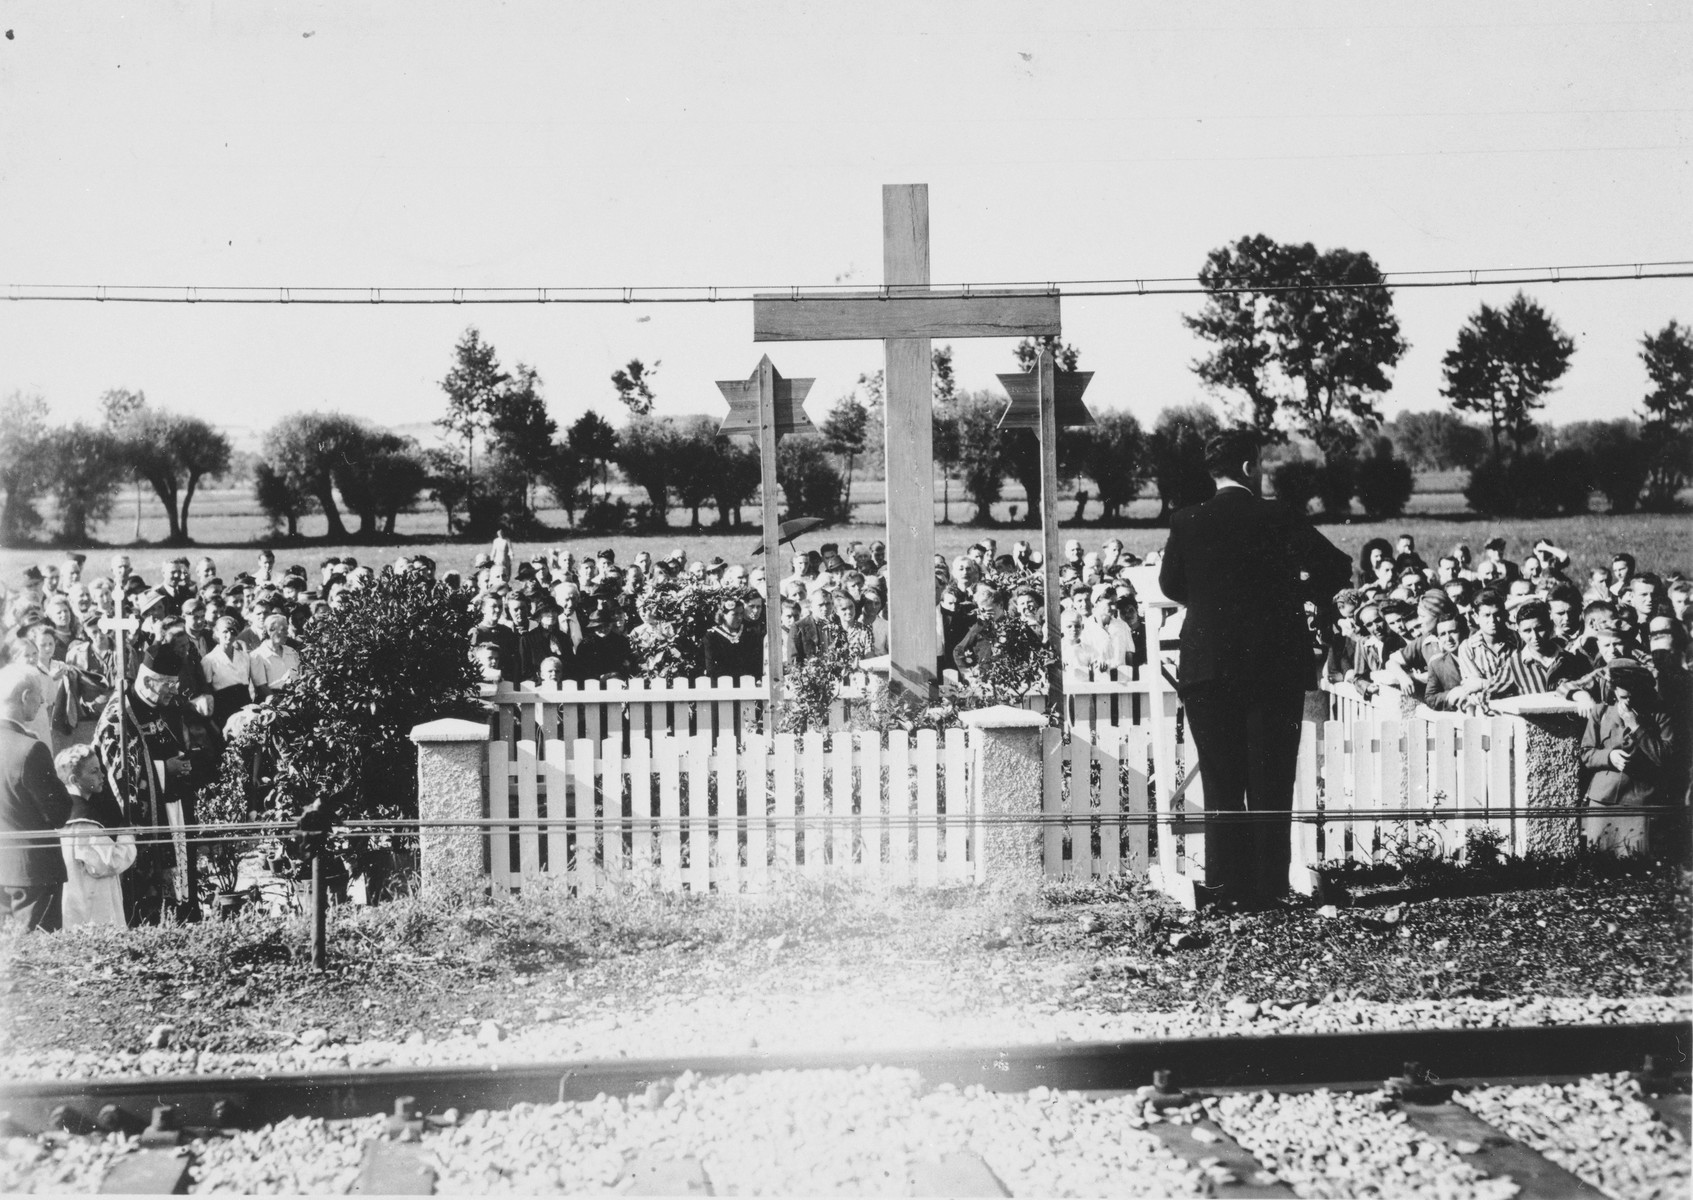 Dedication of a memorial at the site of the Pocking concentration camp.